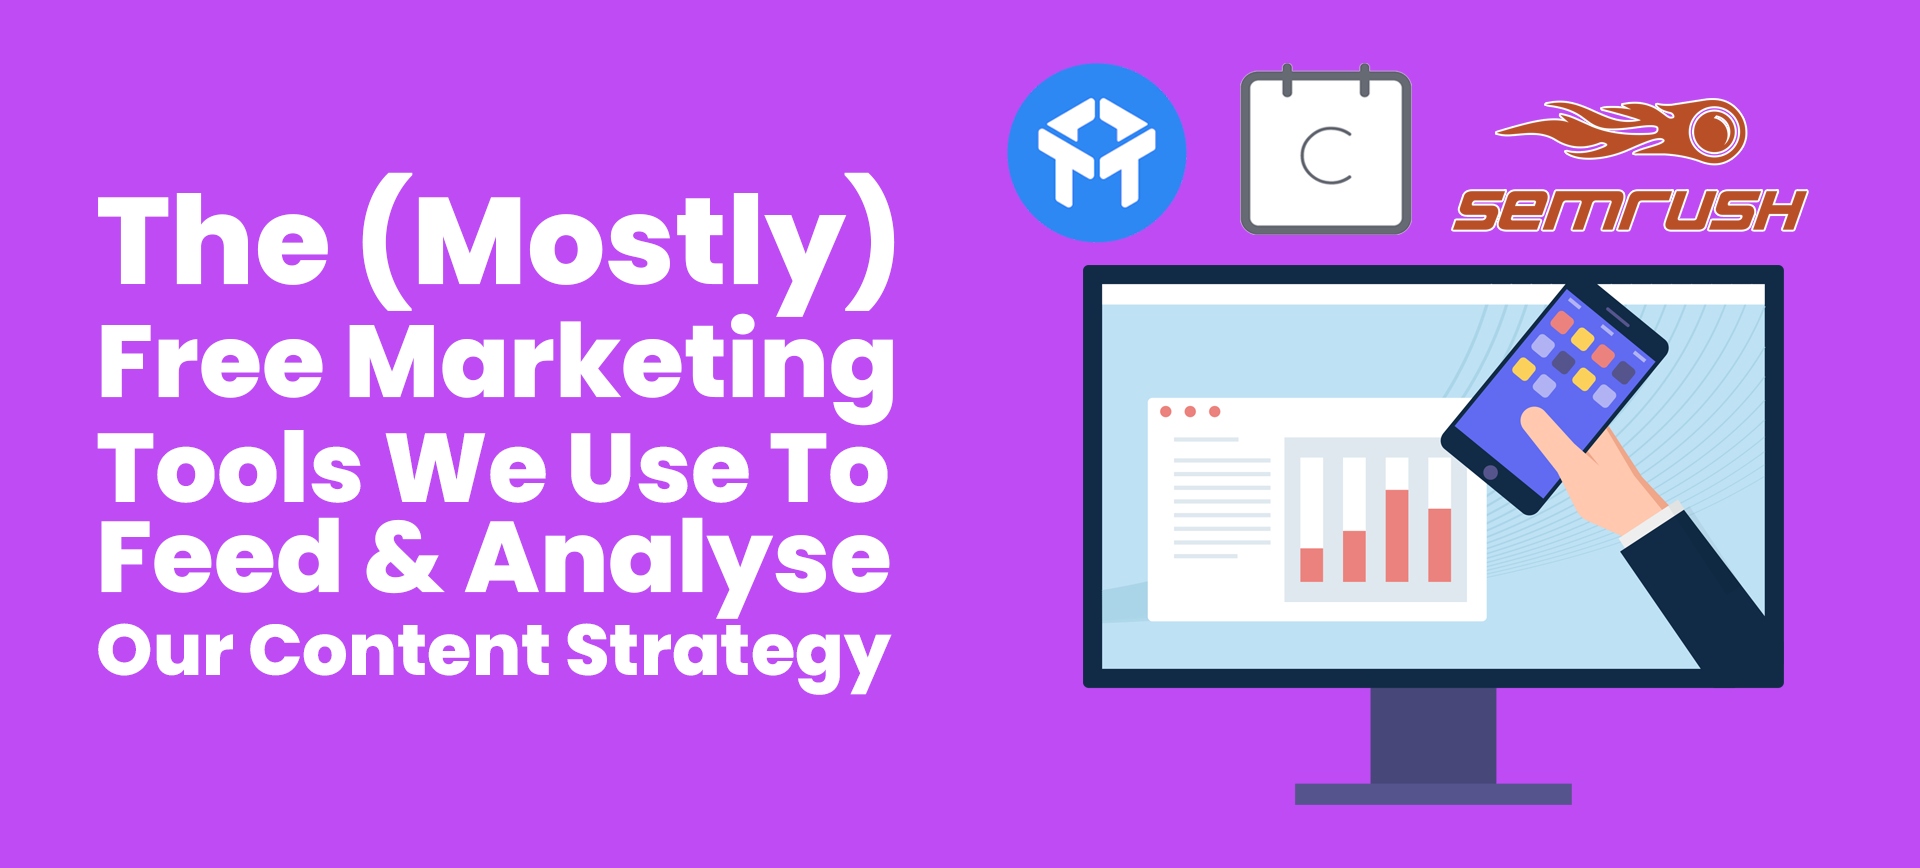 the (mostly) free marketing tools we use to feed & analyse our content strategy